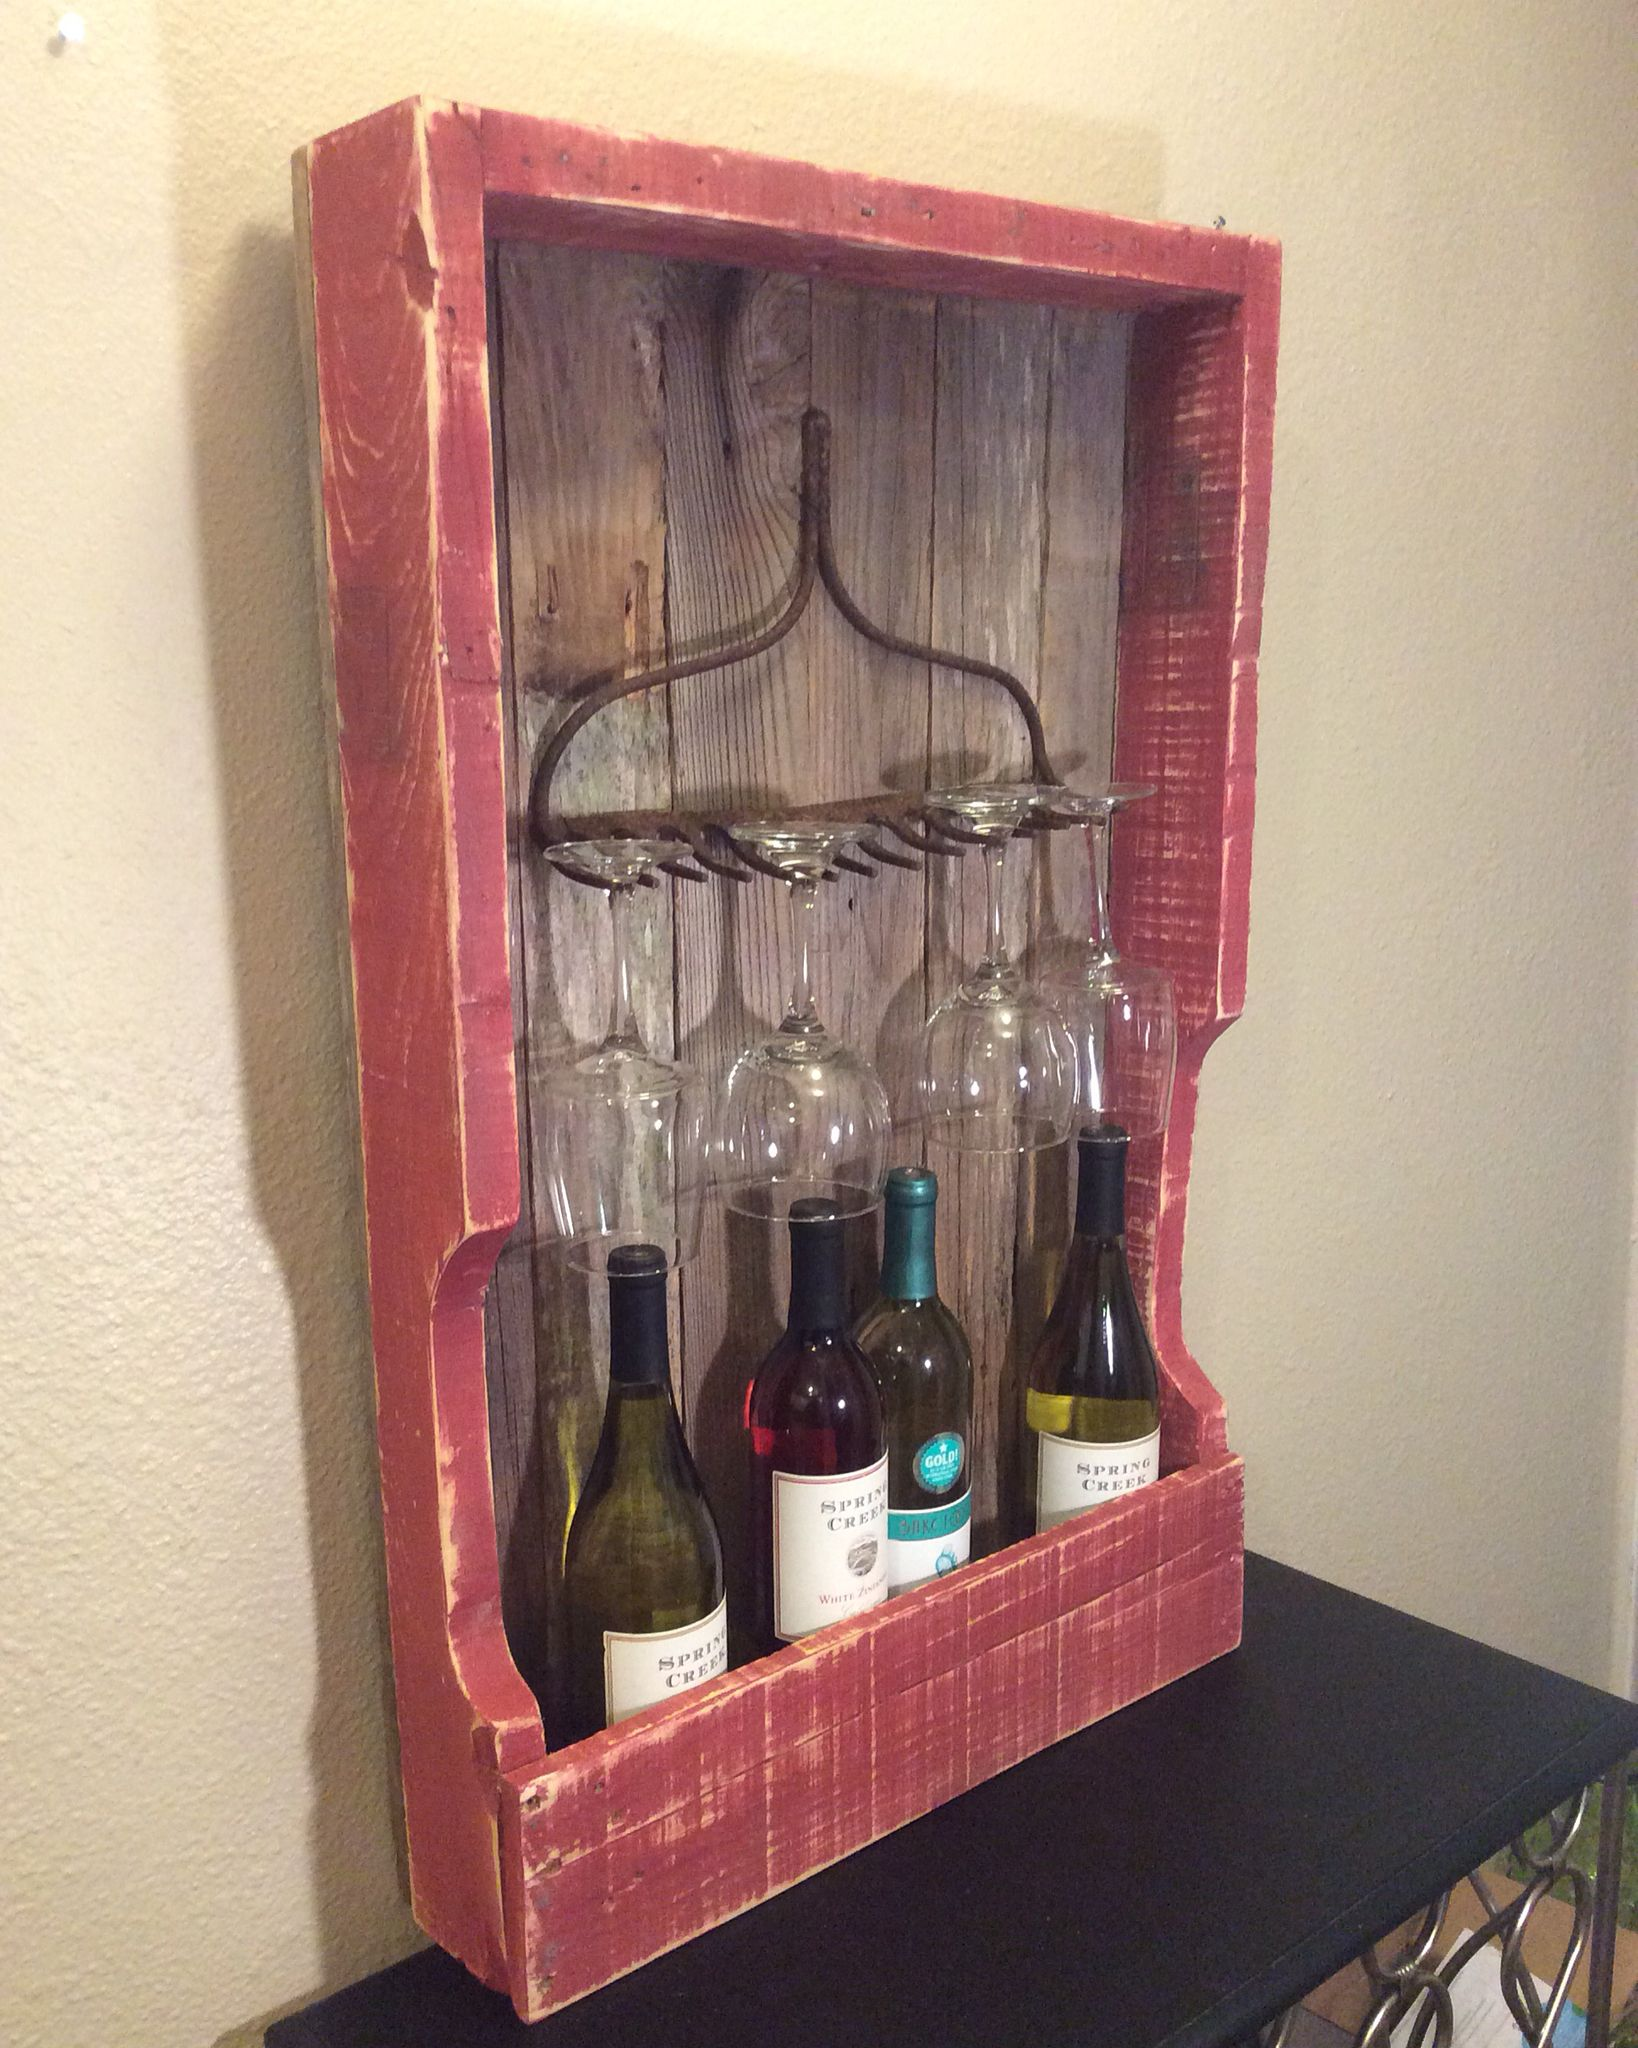 Rustic Wine Rack From Pallet Wood And Fence Pickets With Rusty Rake Head 115 On Etsy Shipping Included Rustic Wine Racks Wood Wine Racks Pallet Wine Rack